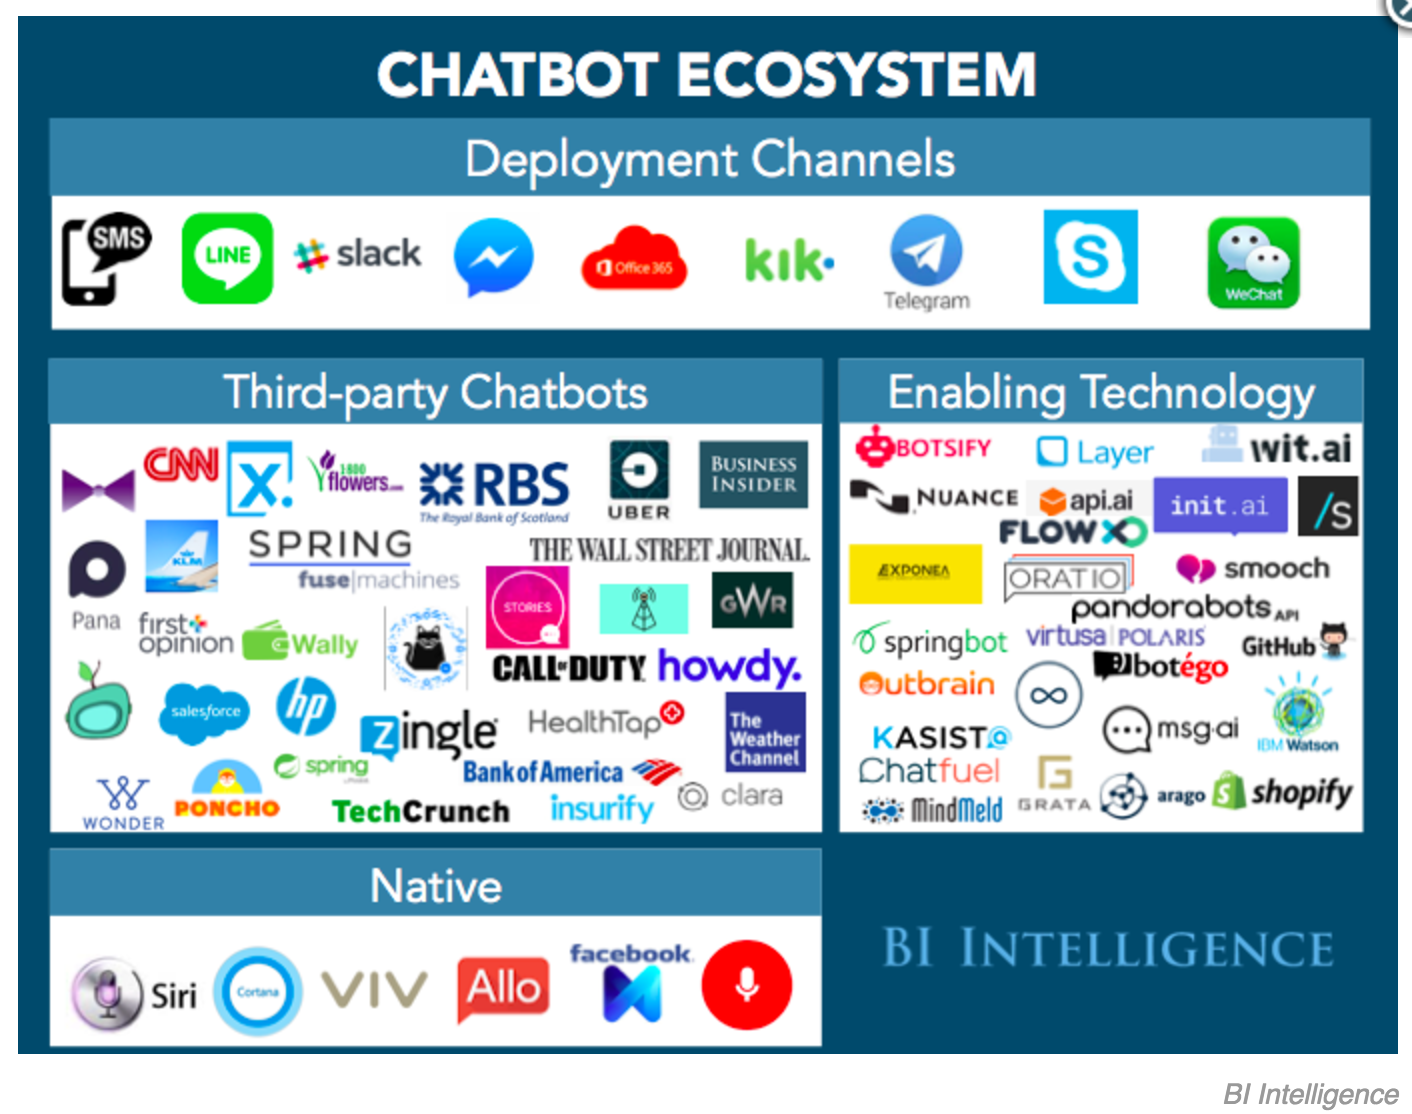 Starting A Chatbot Company: 3 Big Things I've Learned So Far